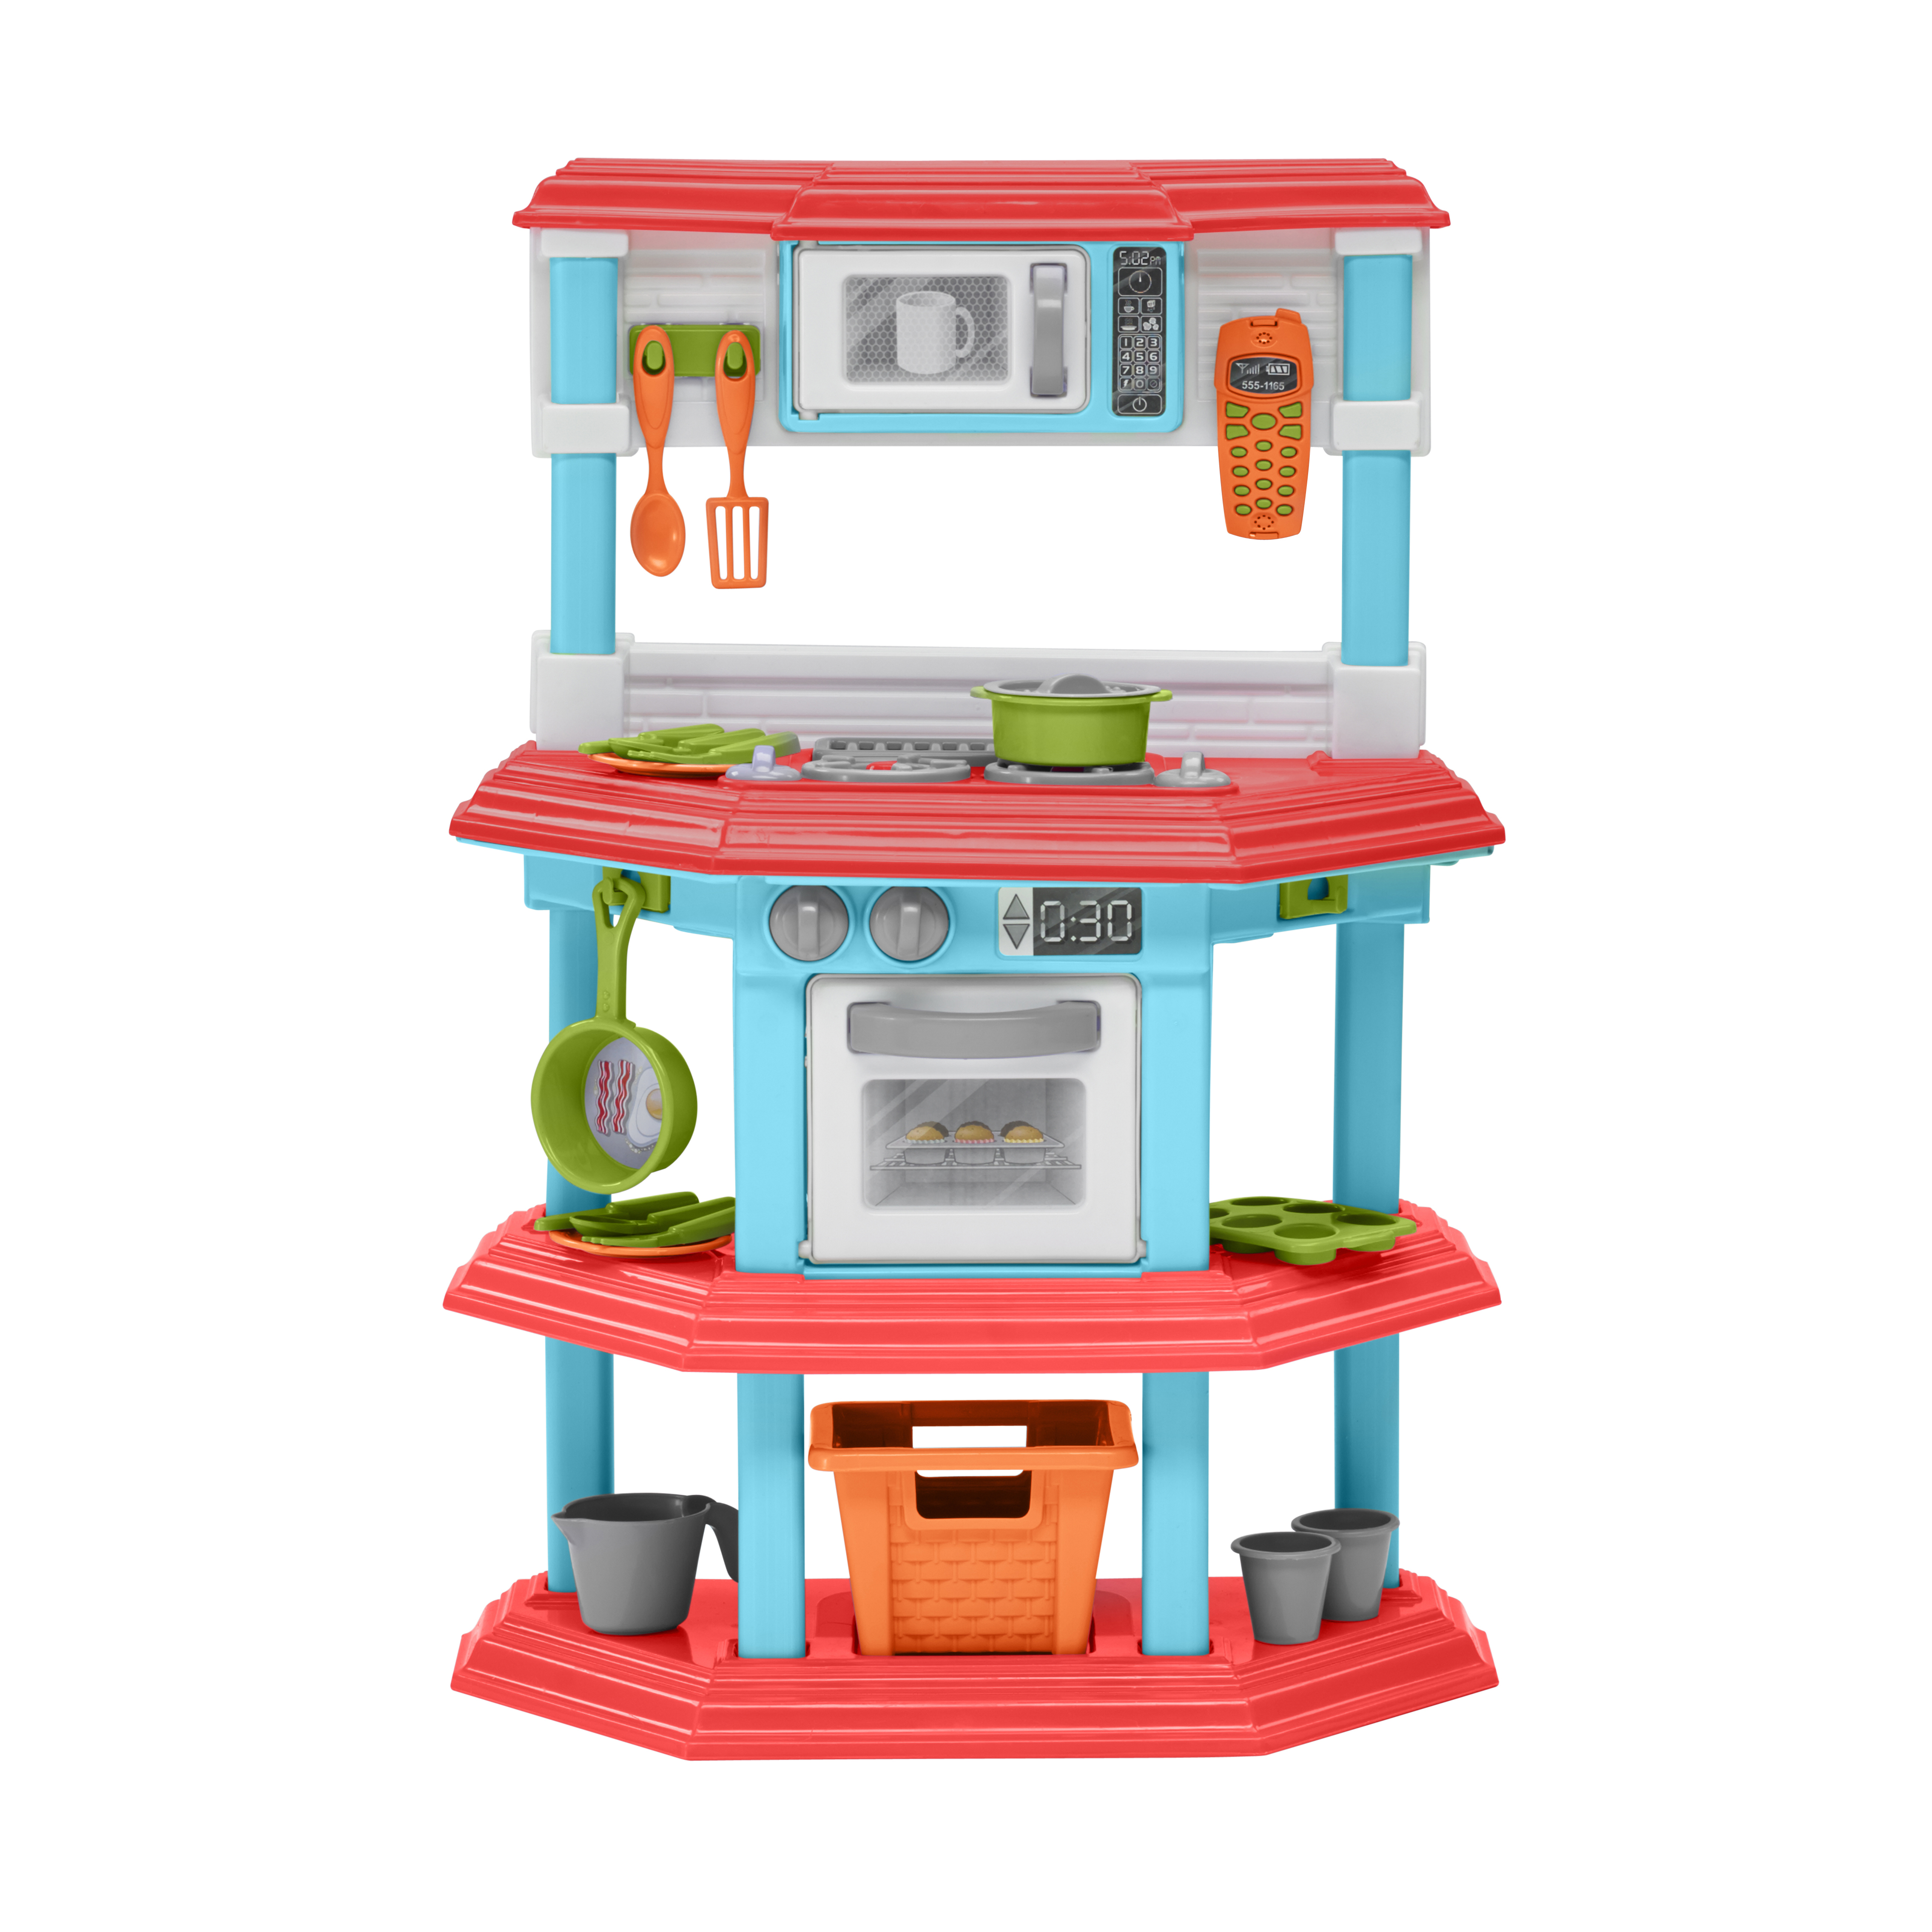 Charmant American Plastic Toys My Very Own Gourmet Kitchen   Walmart.com